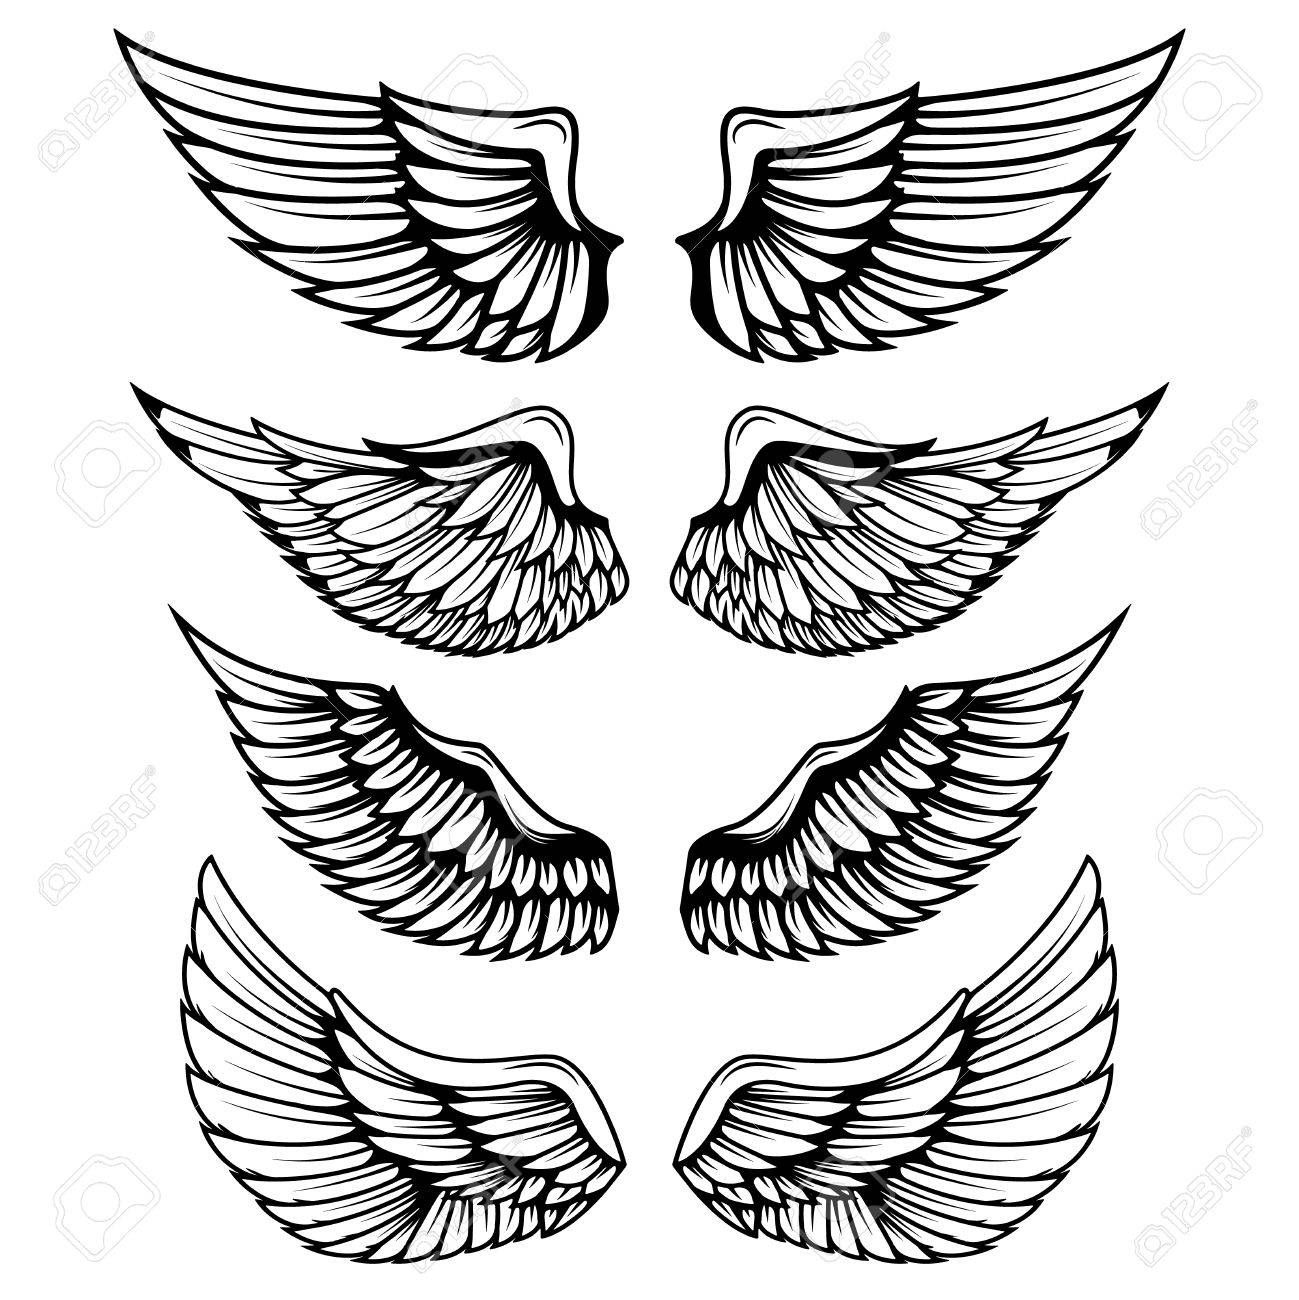 Vintage Wings Isolated On White Background Design Elements Royalty Free Cliparts Vectors And Stock Illustra In 2020 Wings Tattoo Neck Tattoo Wing Tattoo Designs